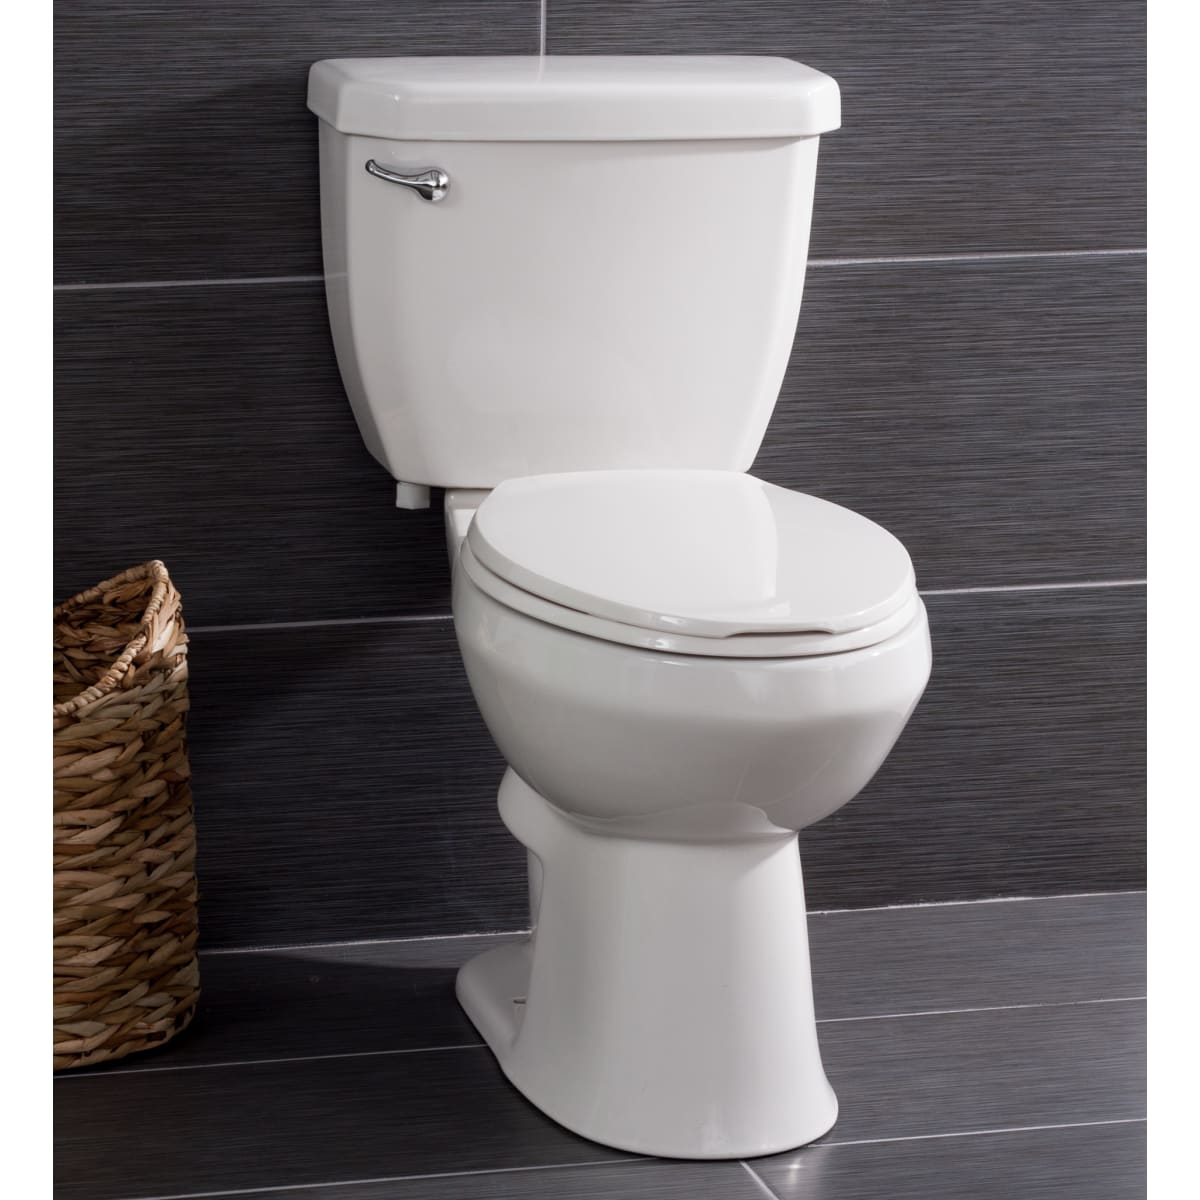 Miseno Bella High-Efficiency 2-Piece Elongated Chair-Height Toilet w/ Seat